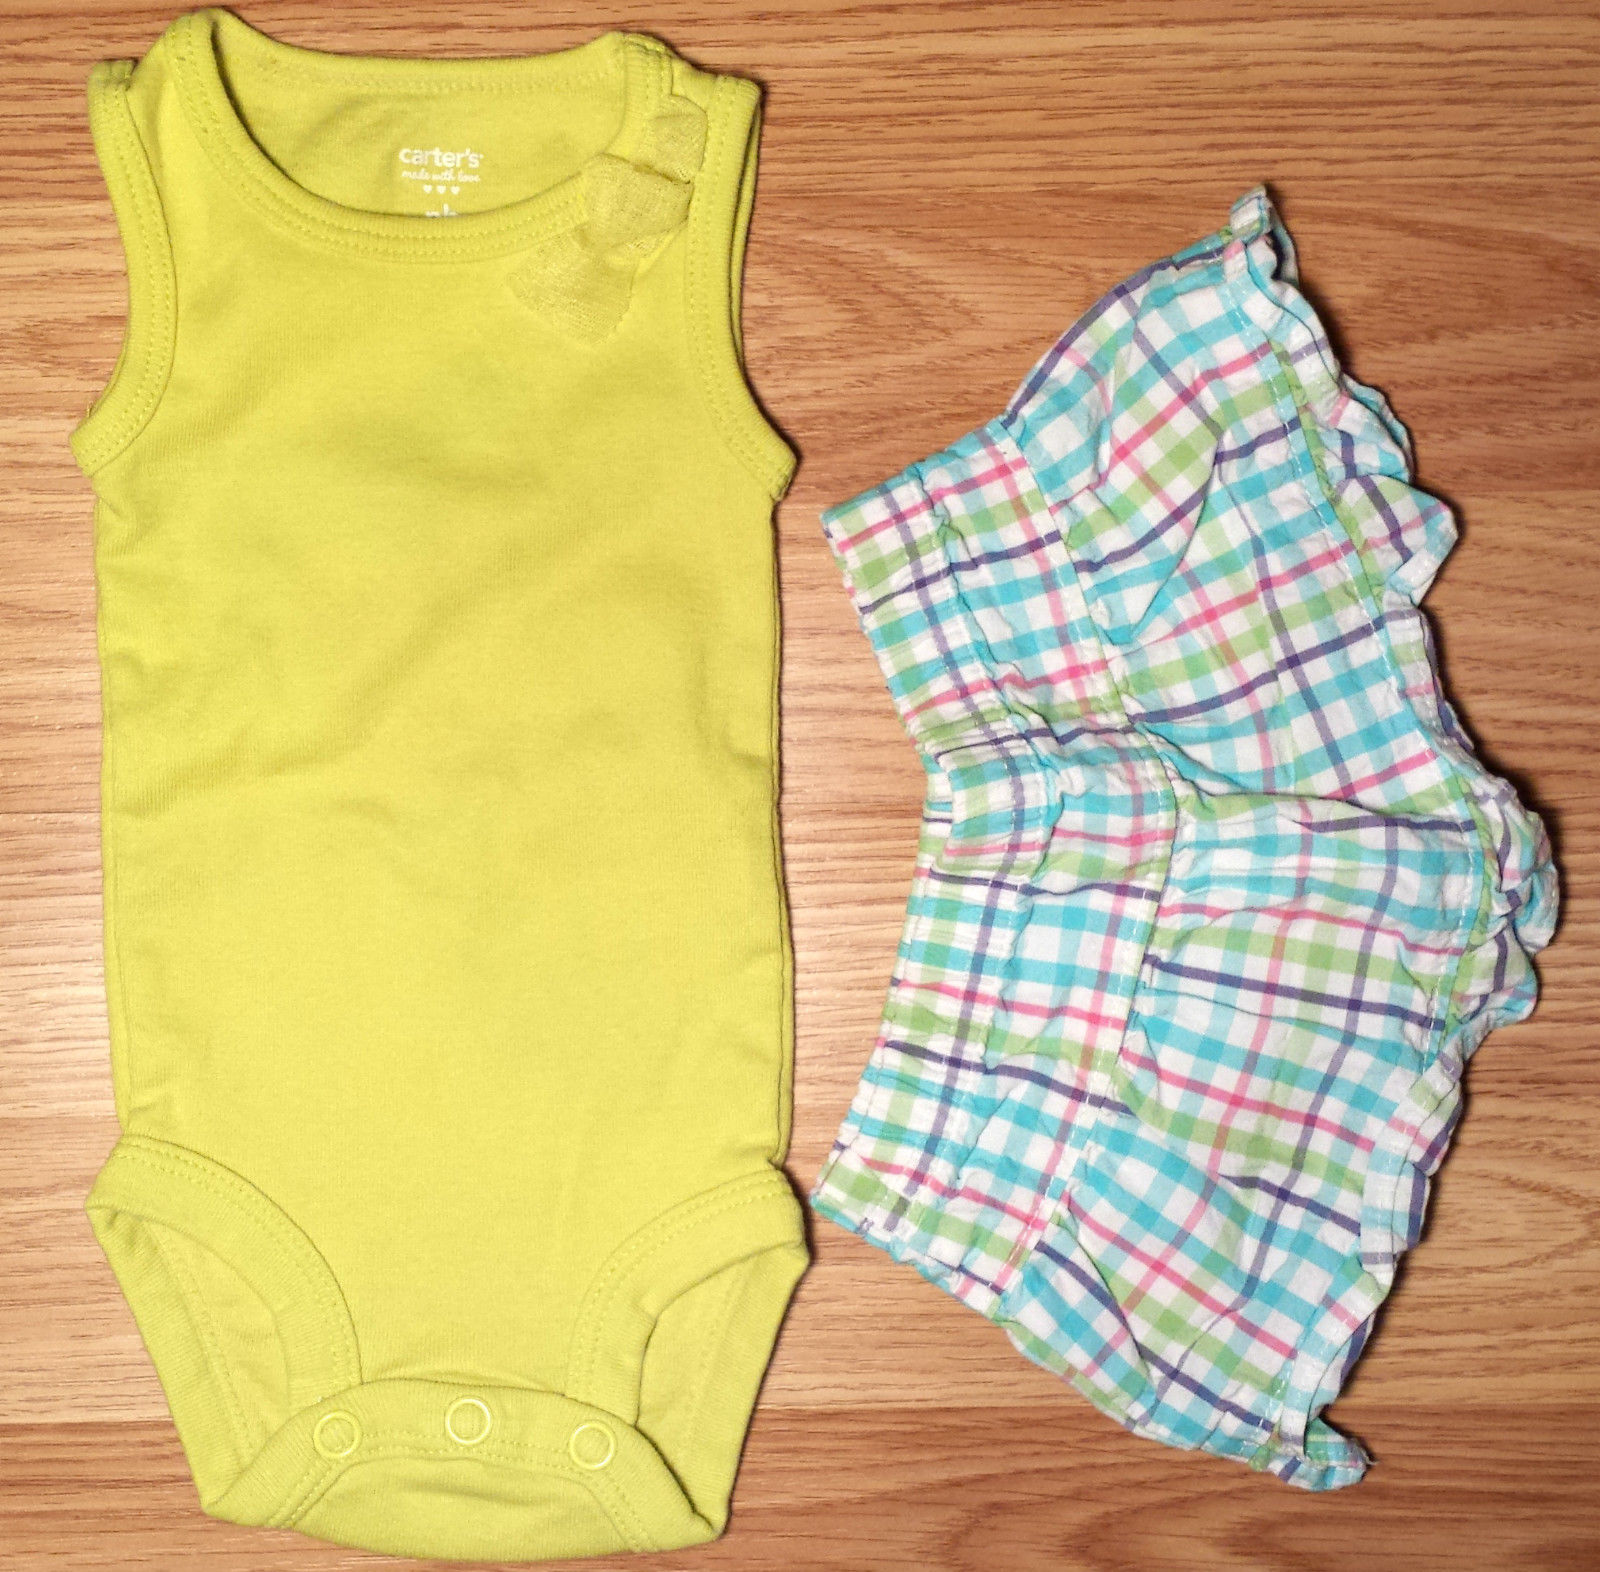 Girl's Size NB Newborn Two Piece Green Carter's Tank Top W/ Bow & Plaid Skirt